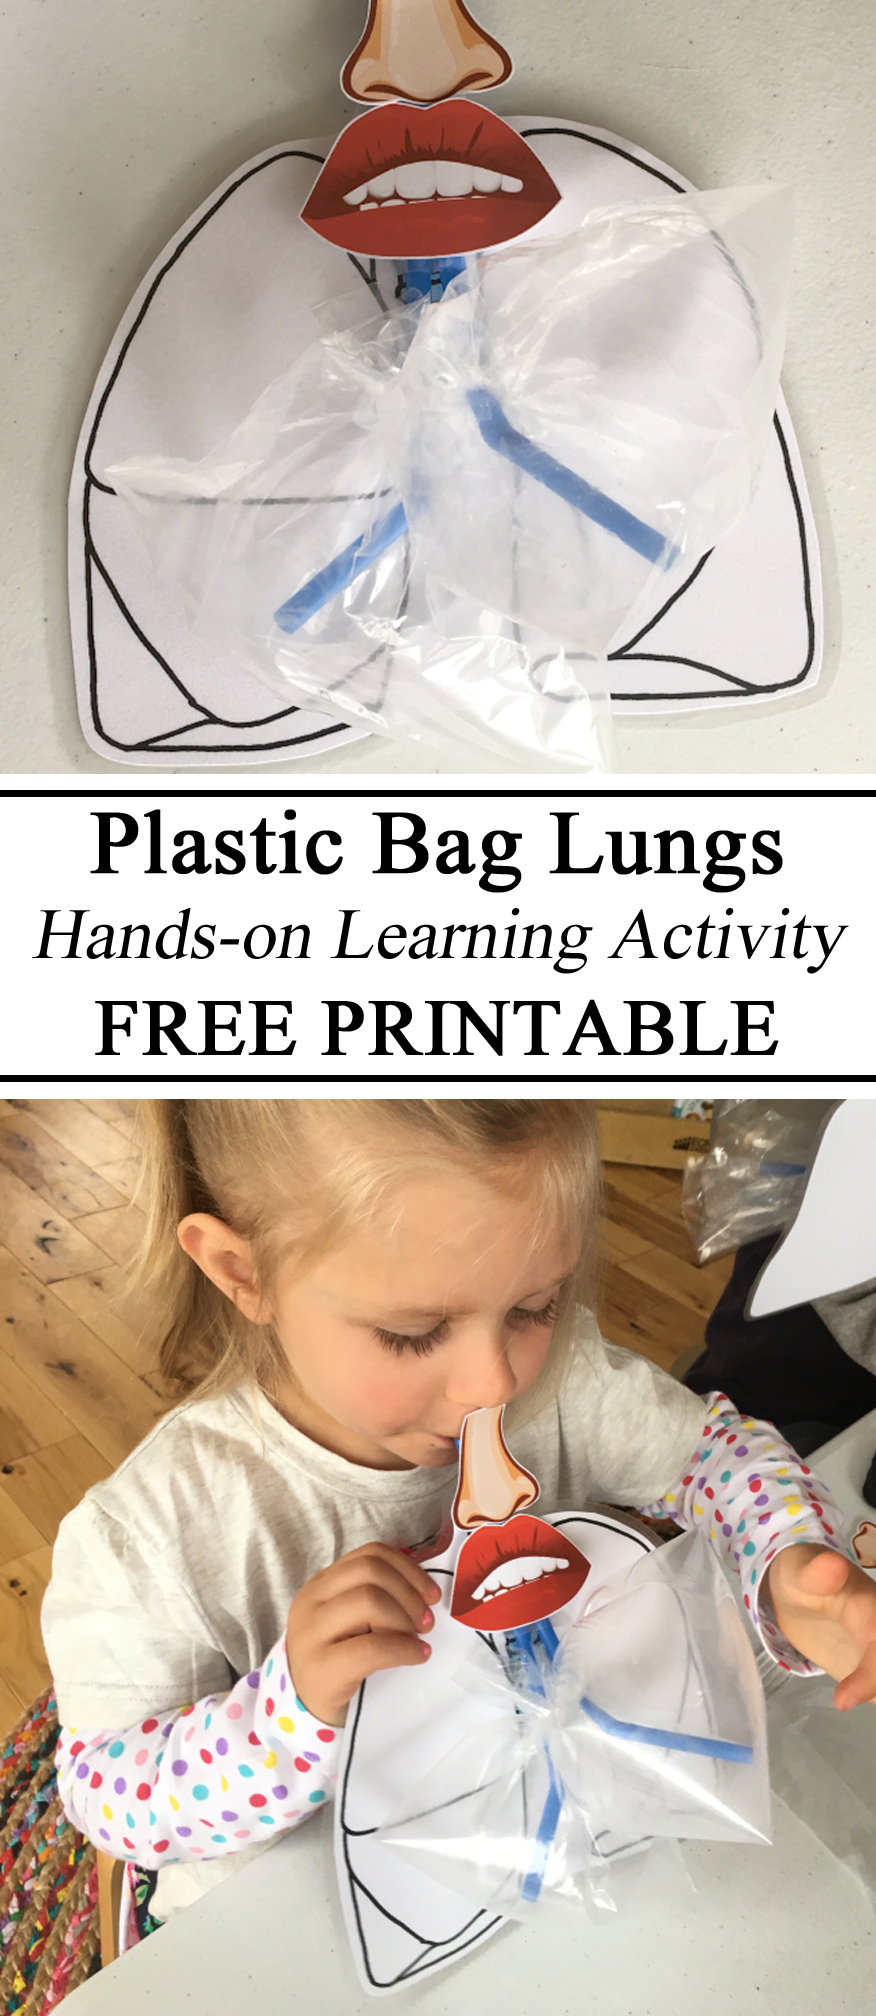 My Body Unit, Lungs, Hands on Activity, Preschool, Montessori, Waldorf, Homeschool, Homeschooling, Free Printables, Educational, Kindergarten, Elementary, Teachers, Inspiration, Resources